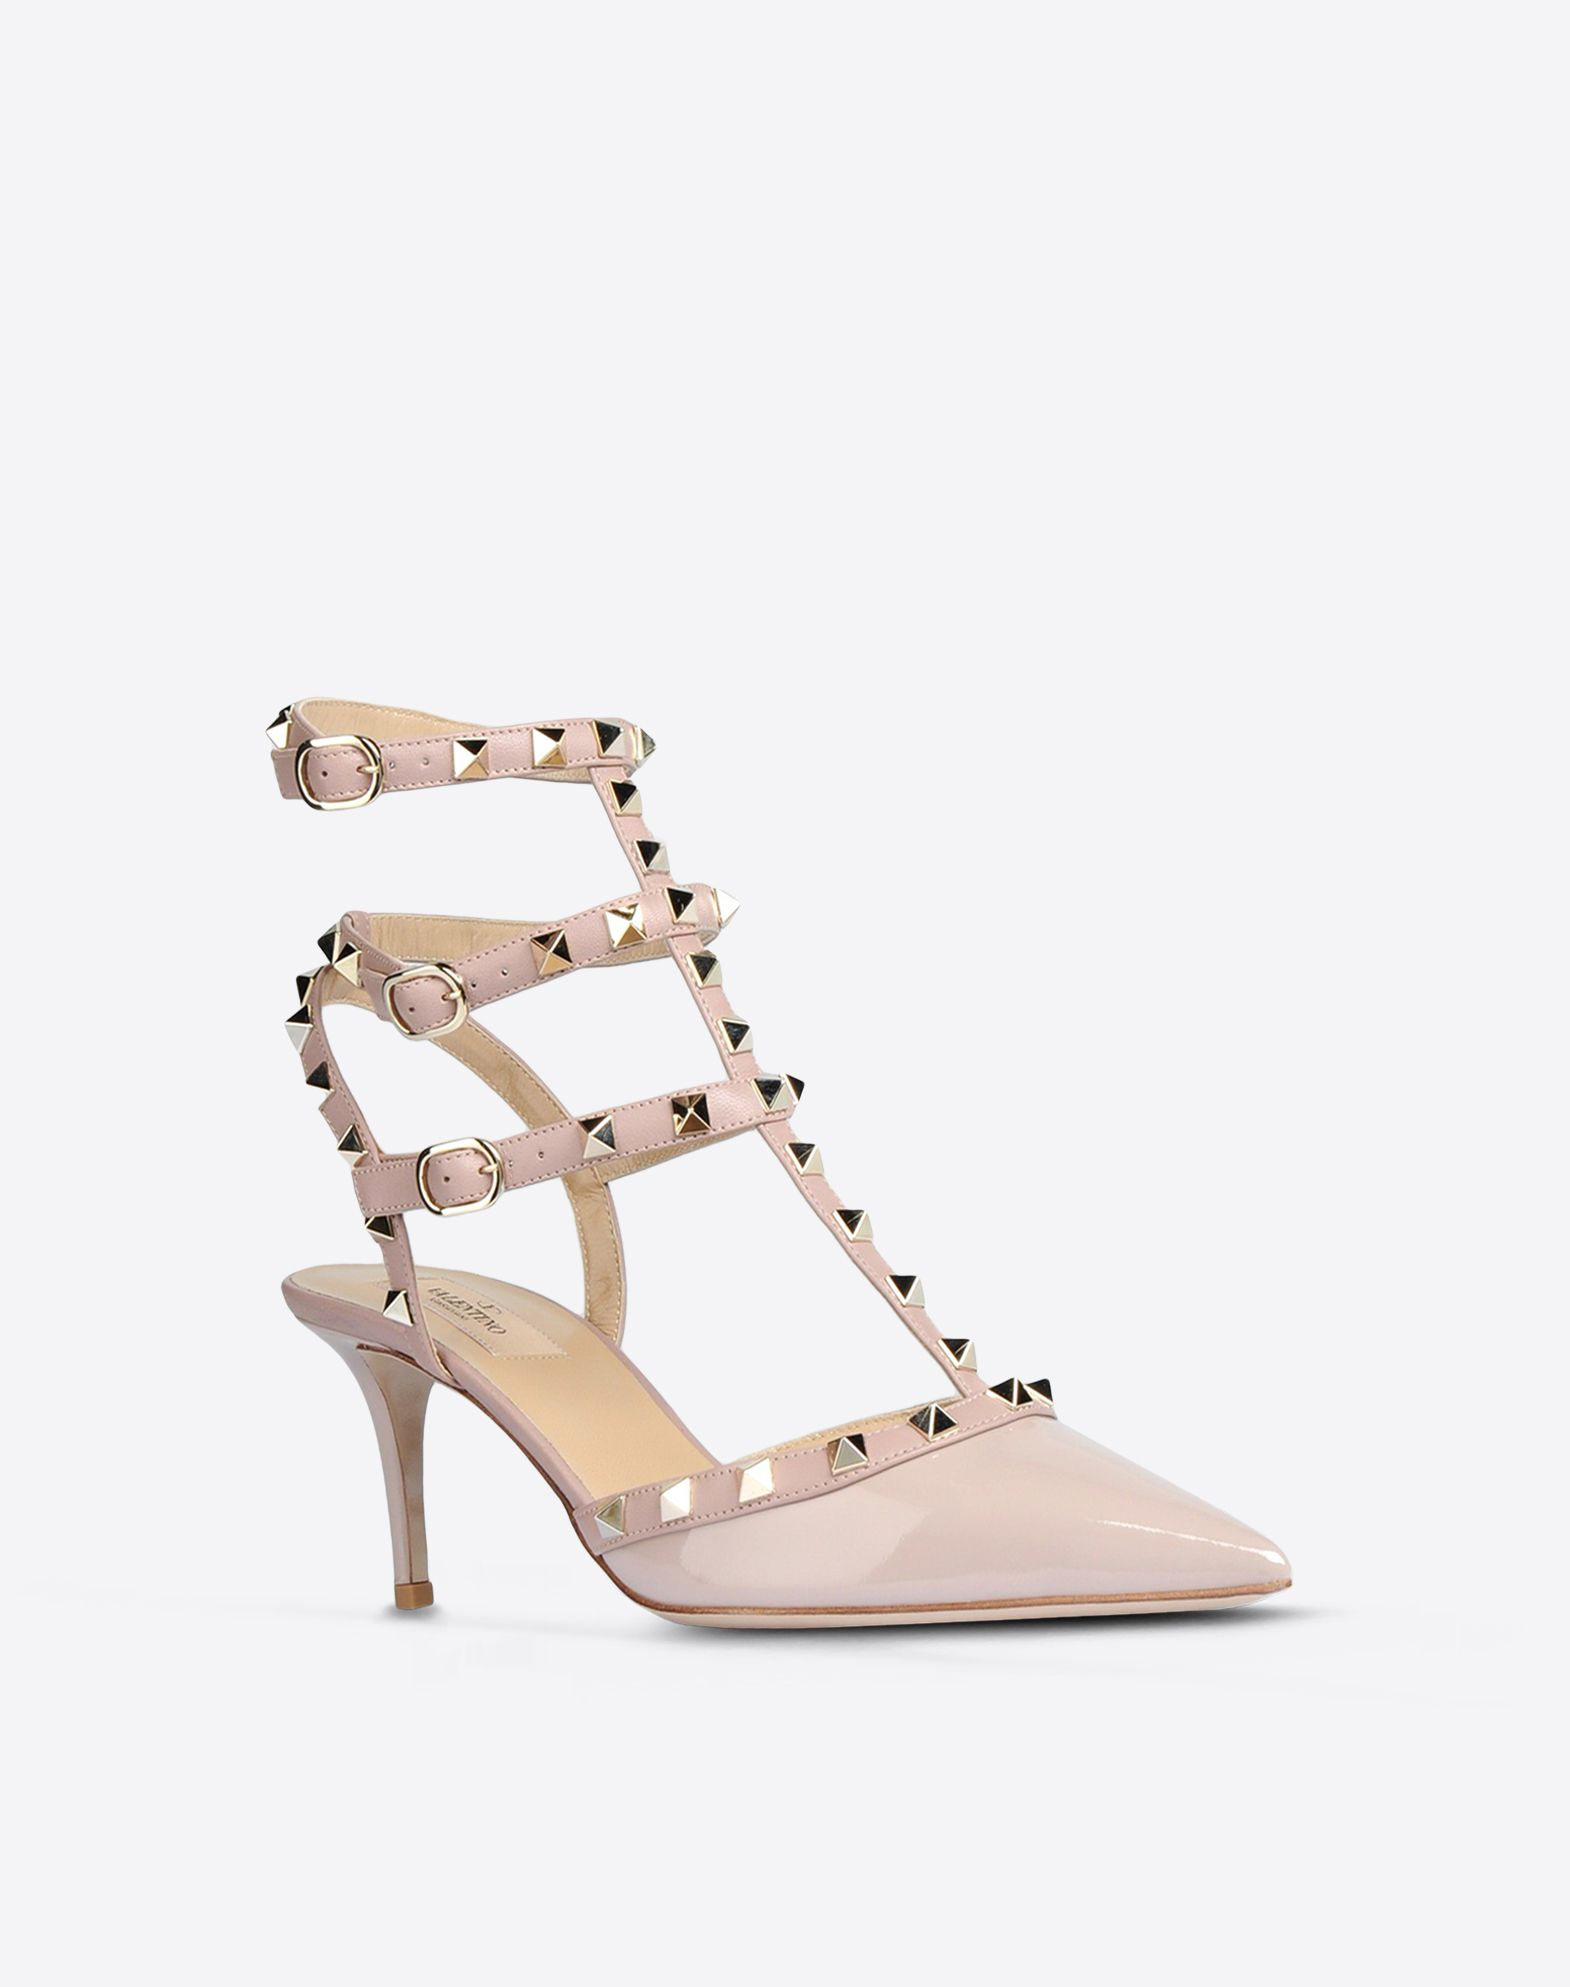 VALENTINO Varnished effect Solid color Buckling ankle strap closure Leather sole Metallic inserts Narrow toeline Spike heel  44572377tn